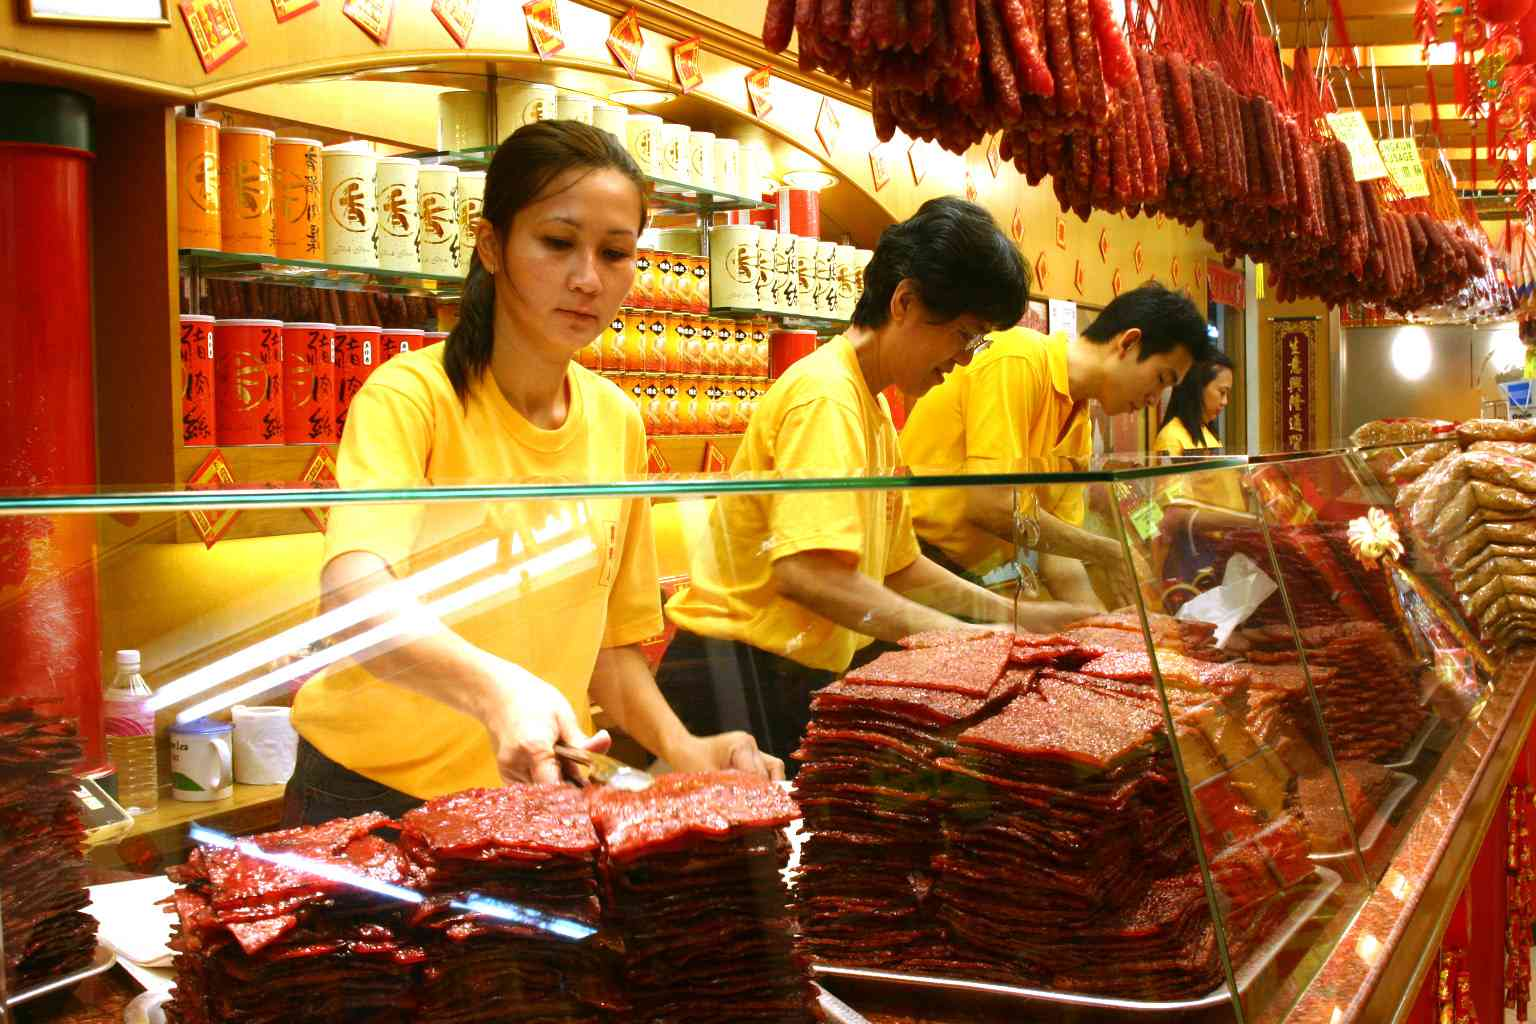 Chinese jerky, called Bakkwa, for sale in a Singapore market